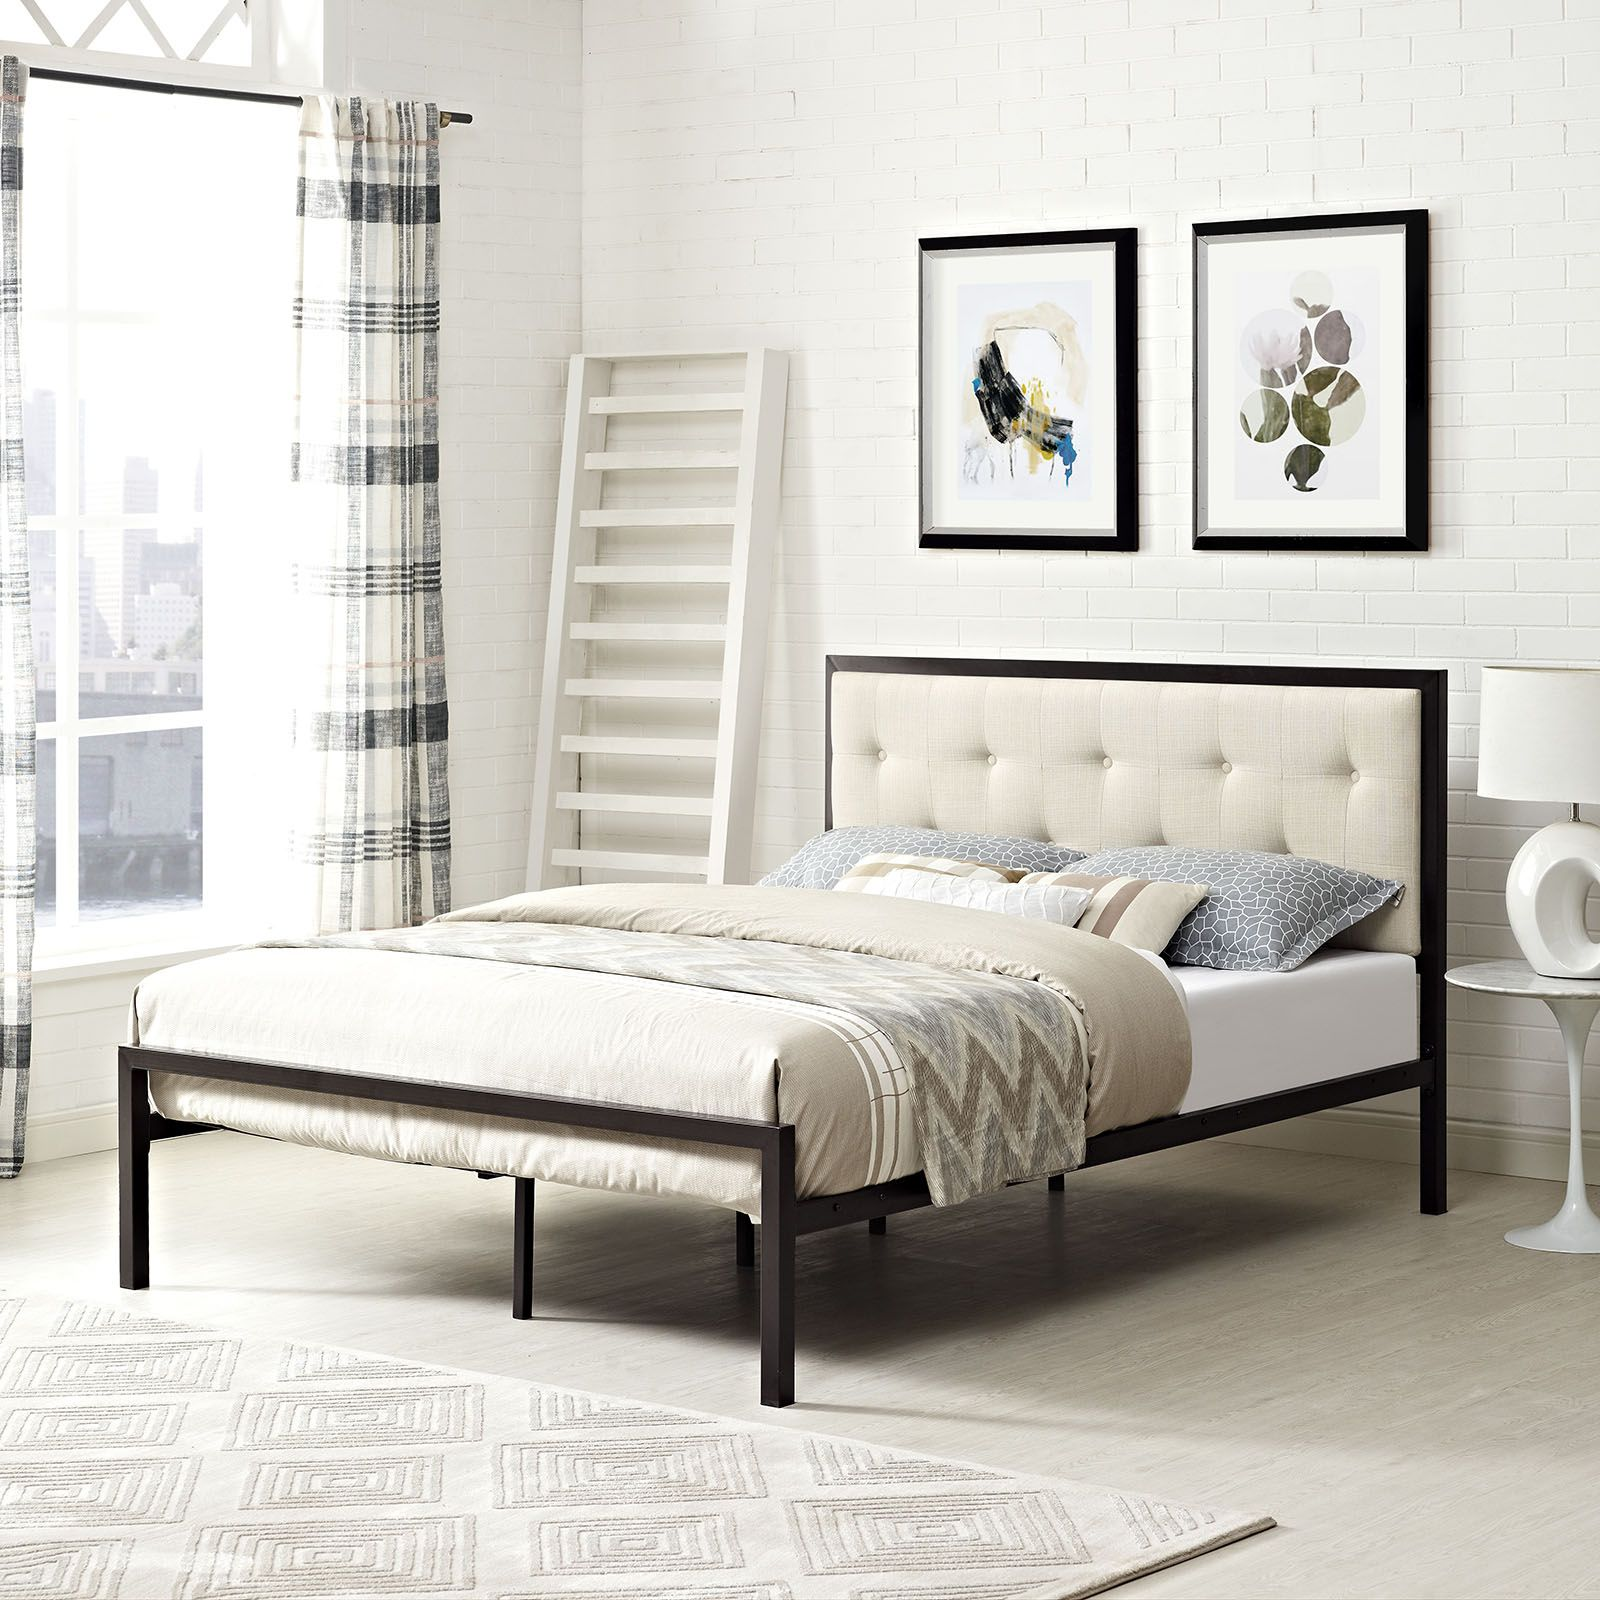 Modway Furniture 5444 Brown Queen Bedframe With Fabric Headboard